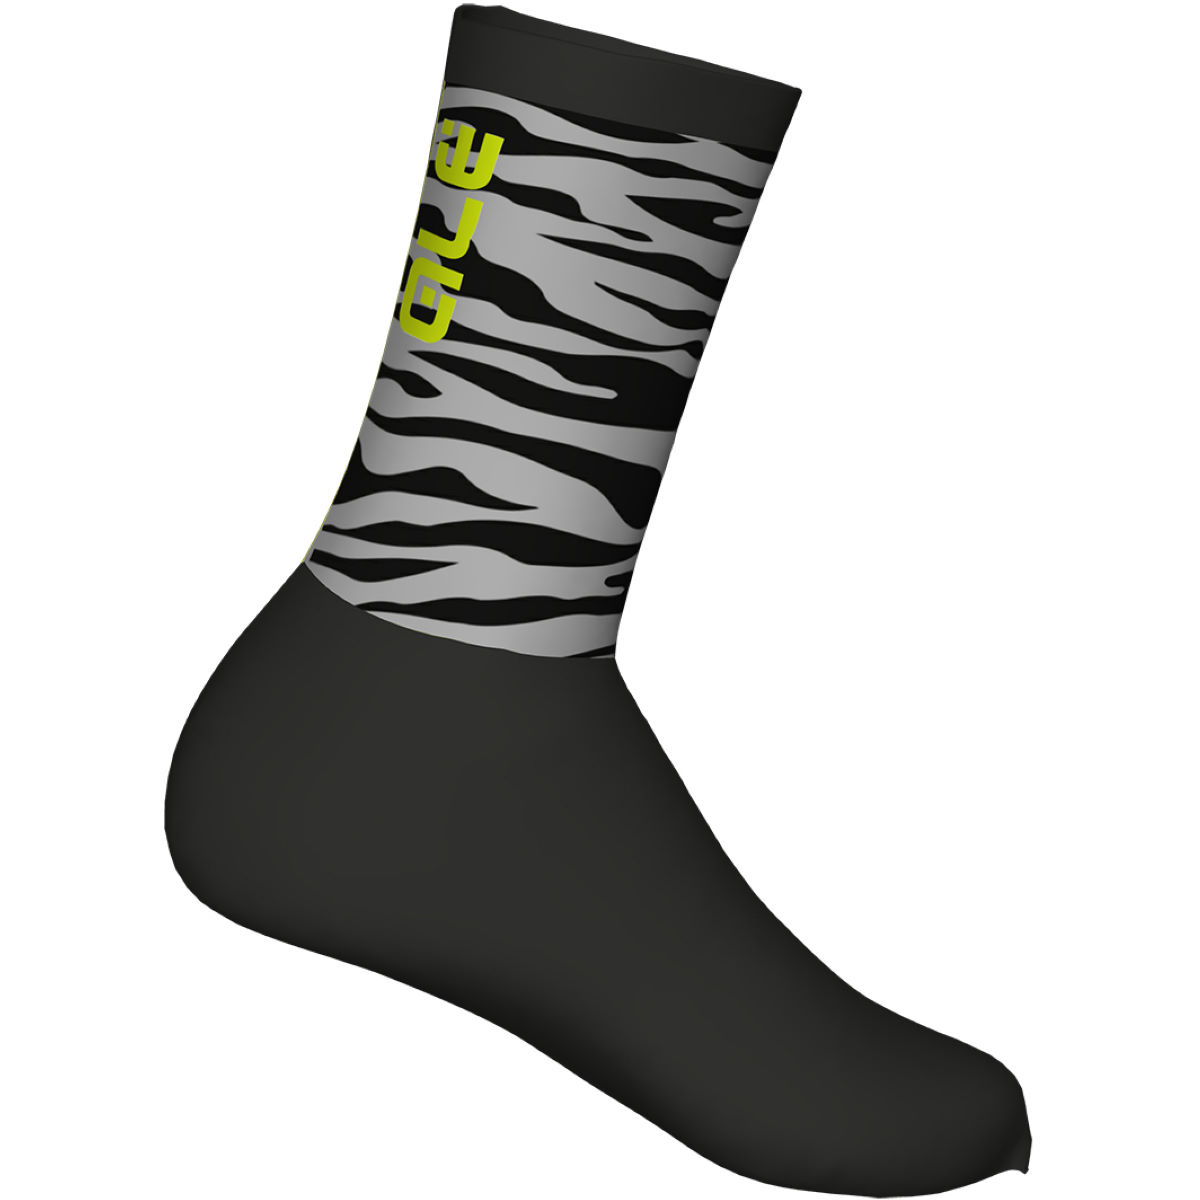 Al flowers socks internal white black ss18 l18546818 03